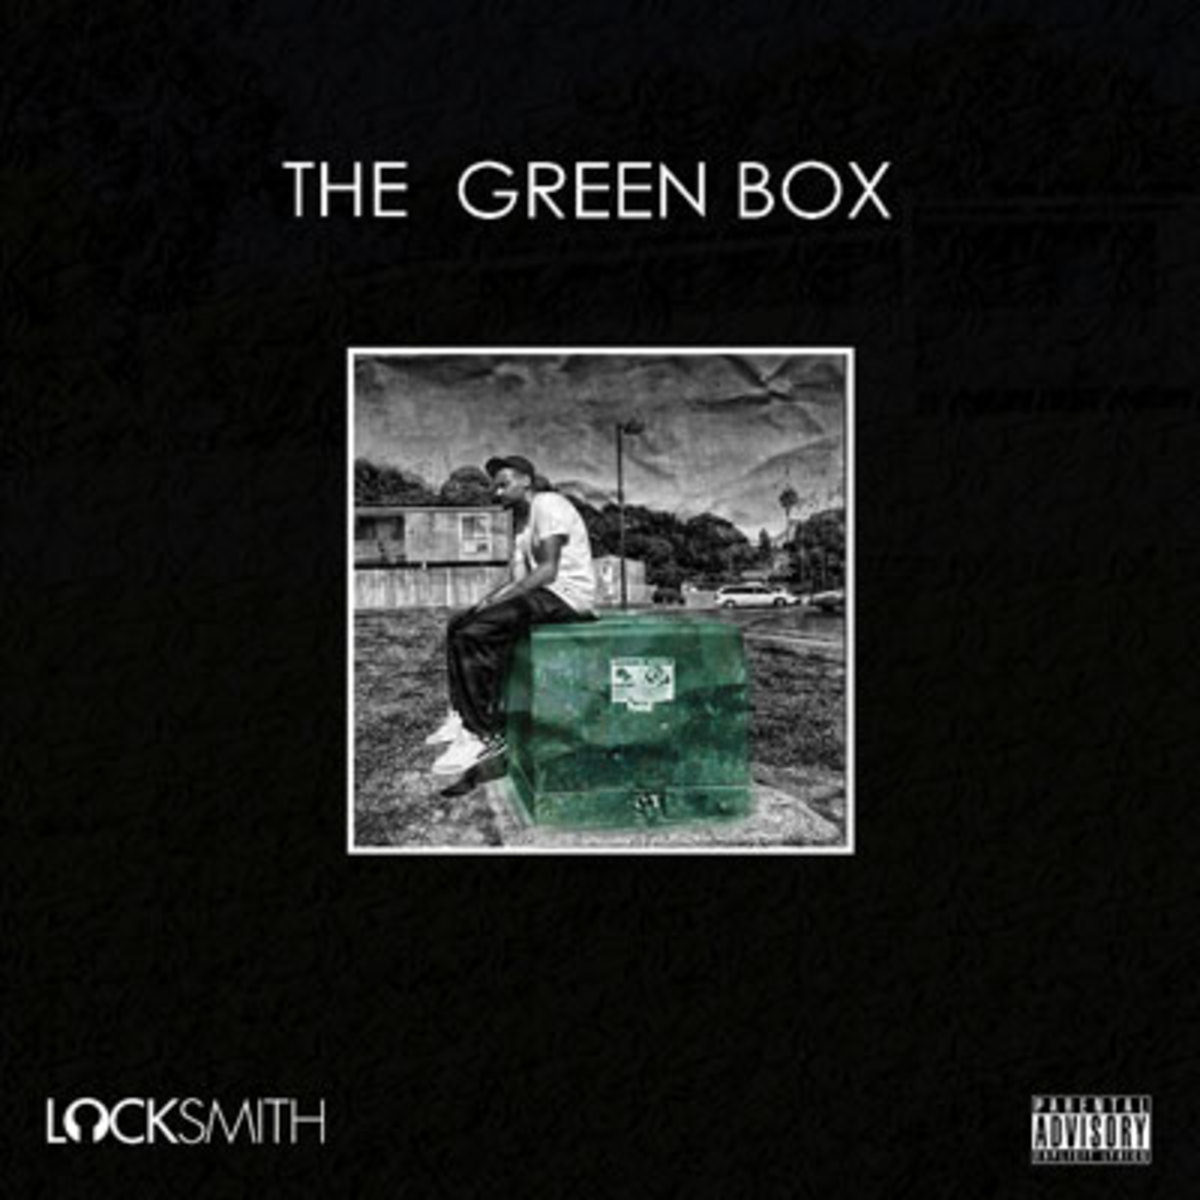 locksmith-greenbox.jpg